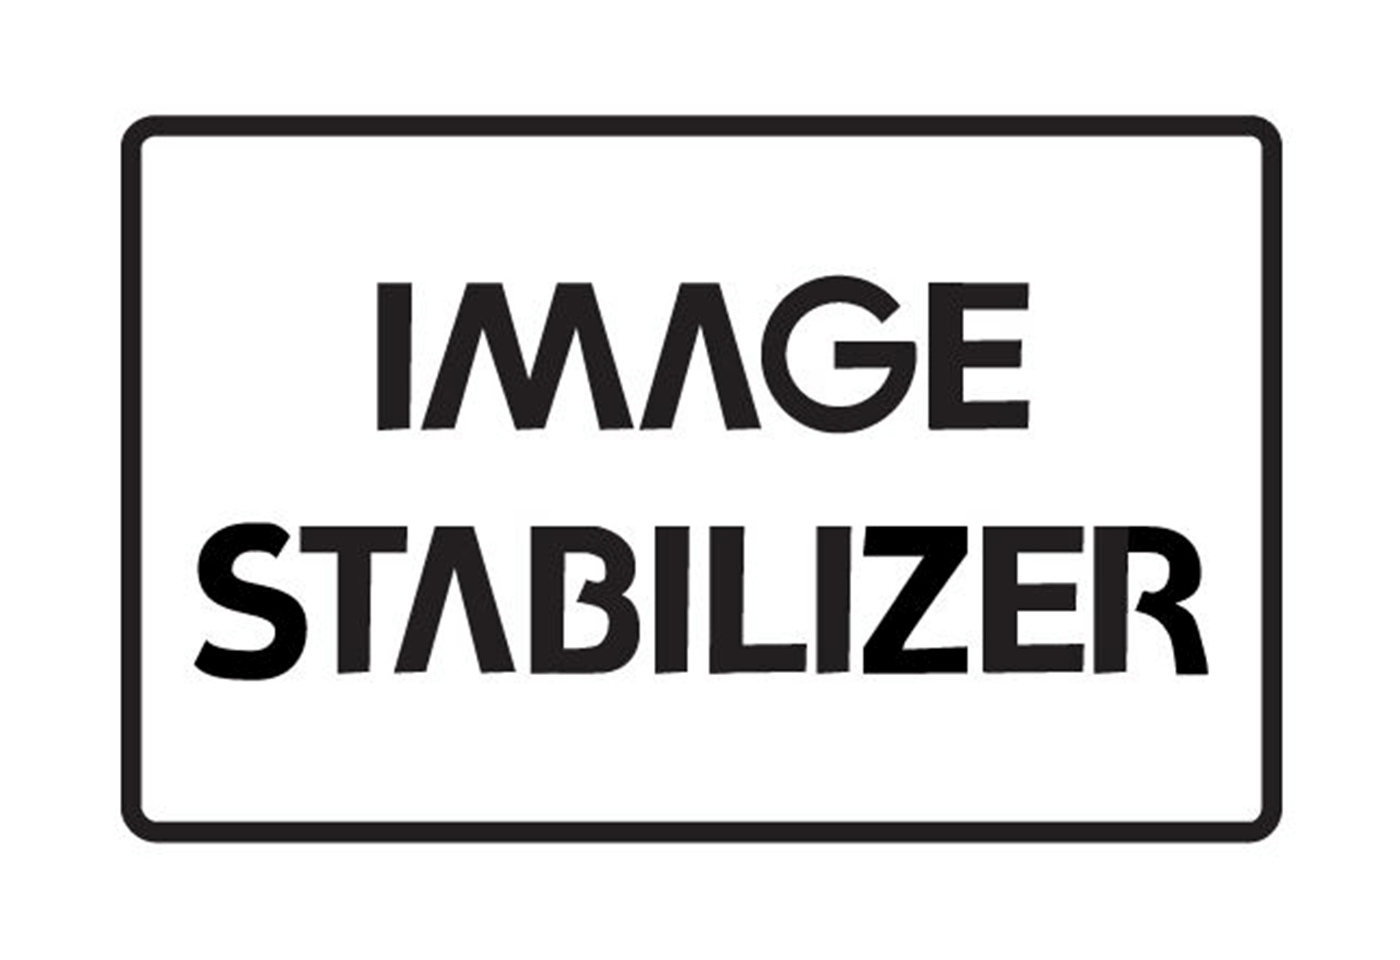 IMAGE STABILIZER log black